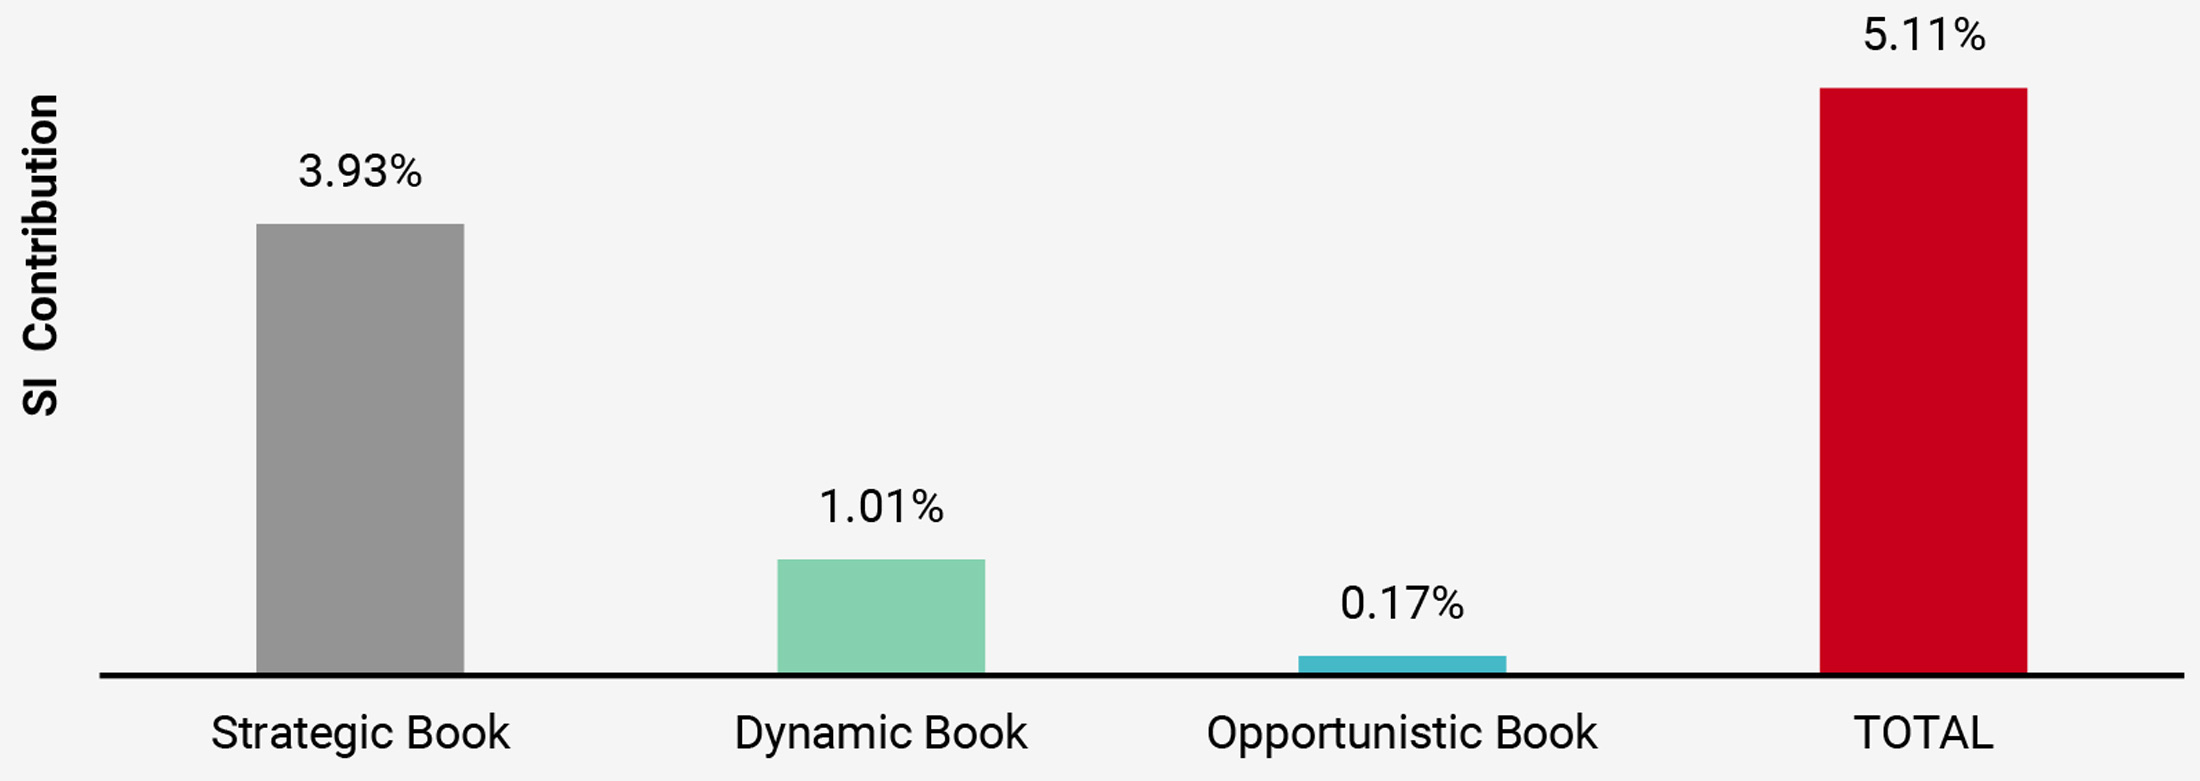 Figure 7: Contribution by Books in Navigator